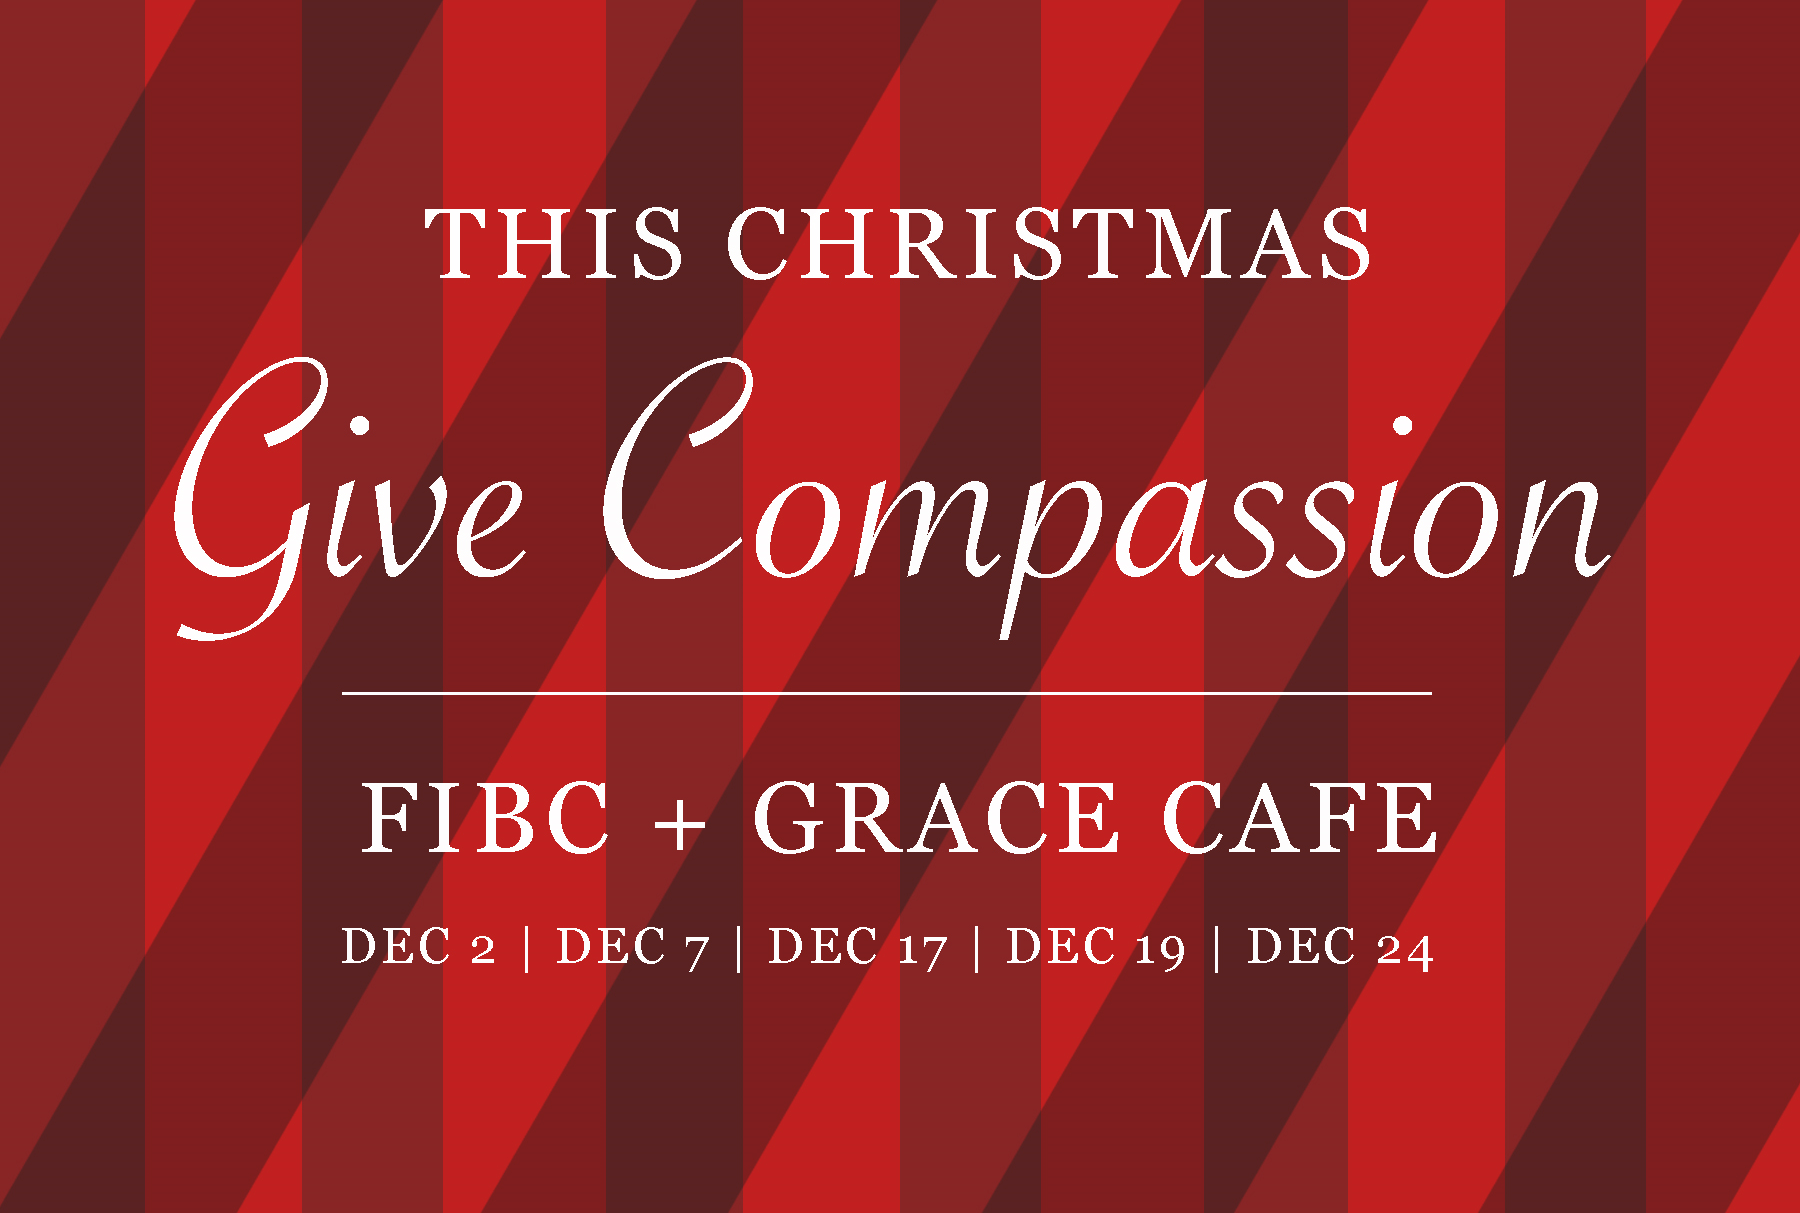 Xmas-With-Grace-Cafe.jpg